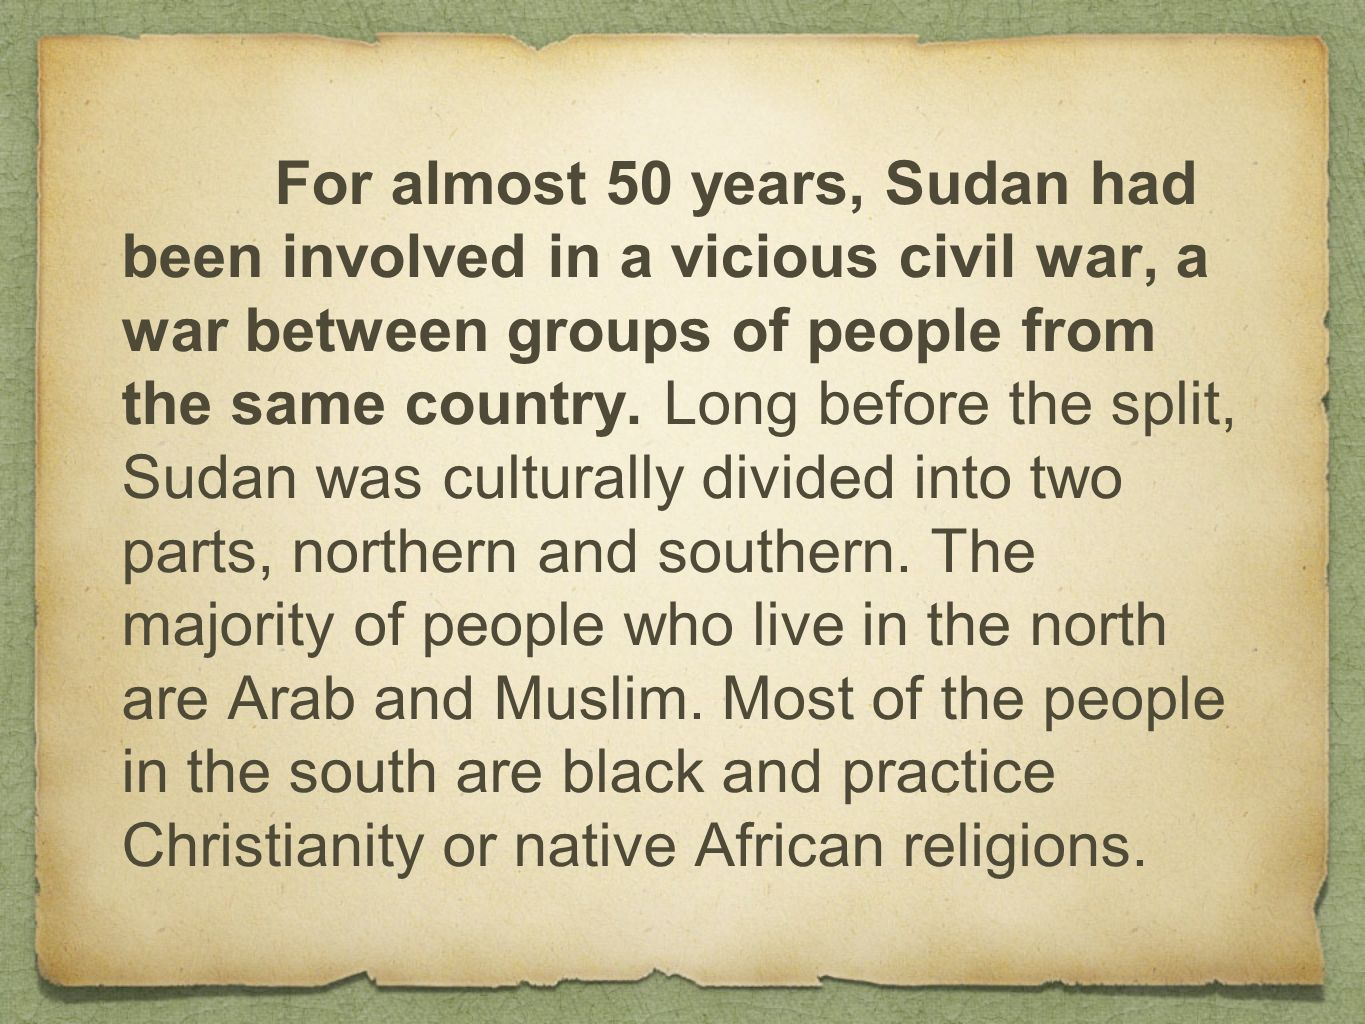 For almost 50 years, Sudan had been involved in a vicious civil war, a war between groups of people from the same country.